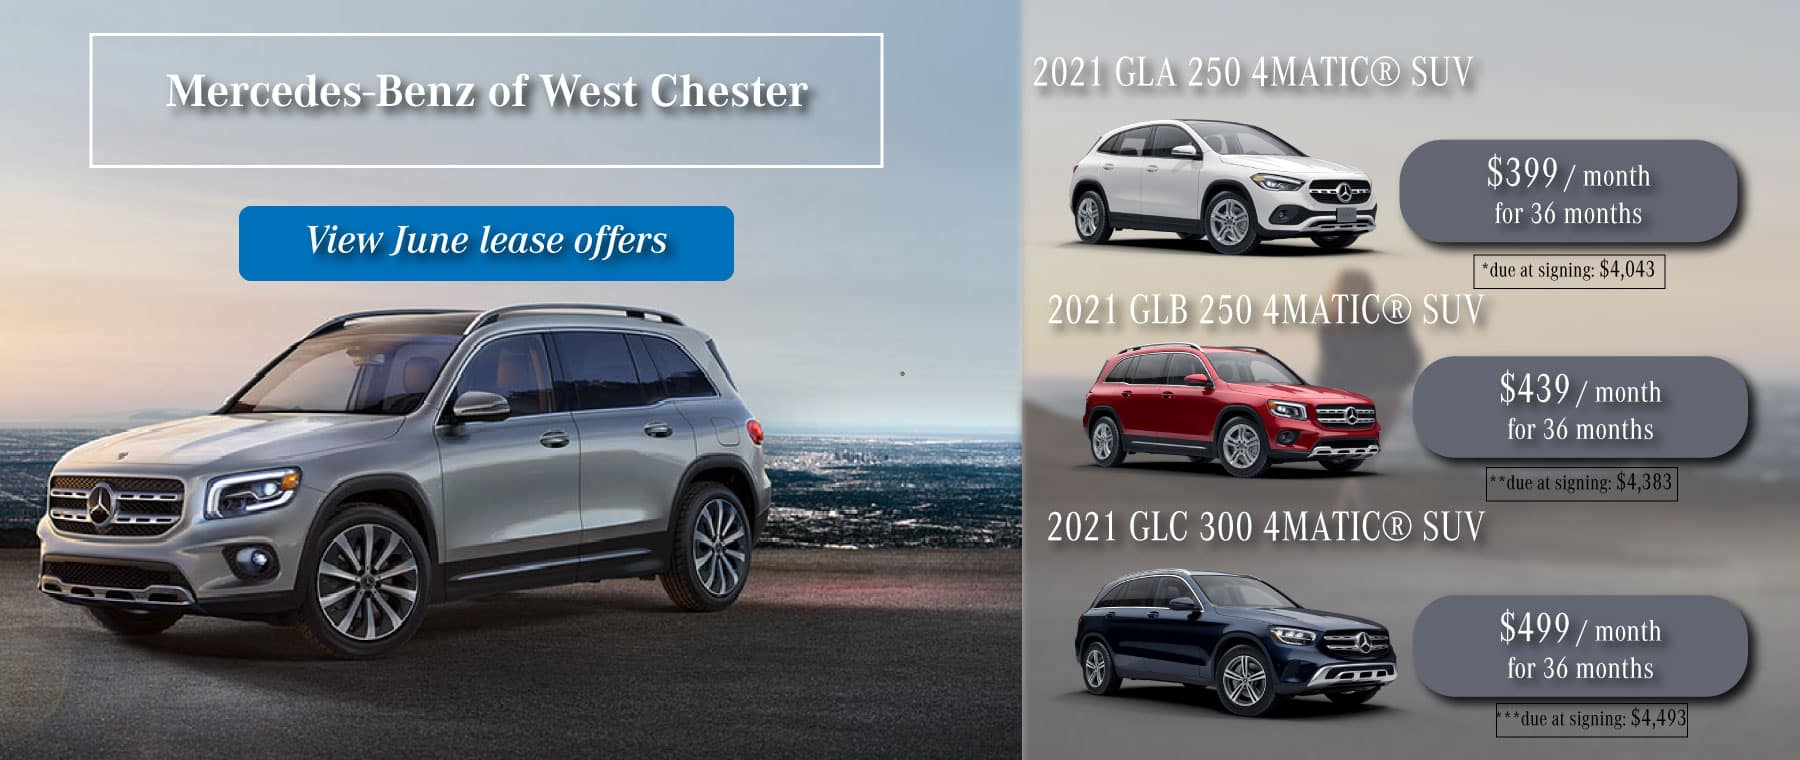 mercedes-benz of west chester new 2021 lease specials